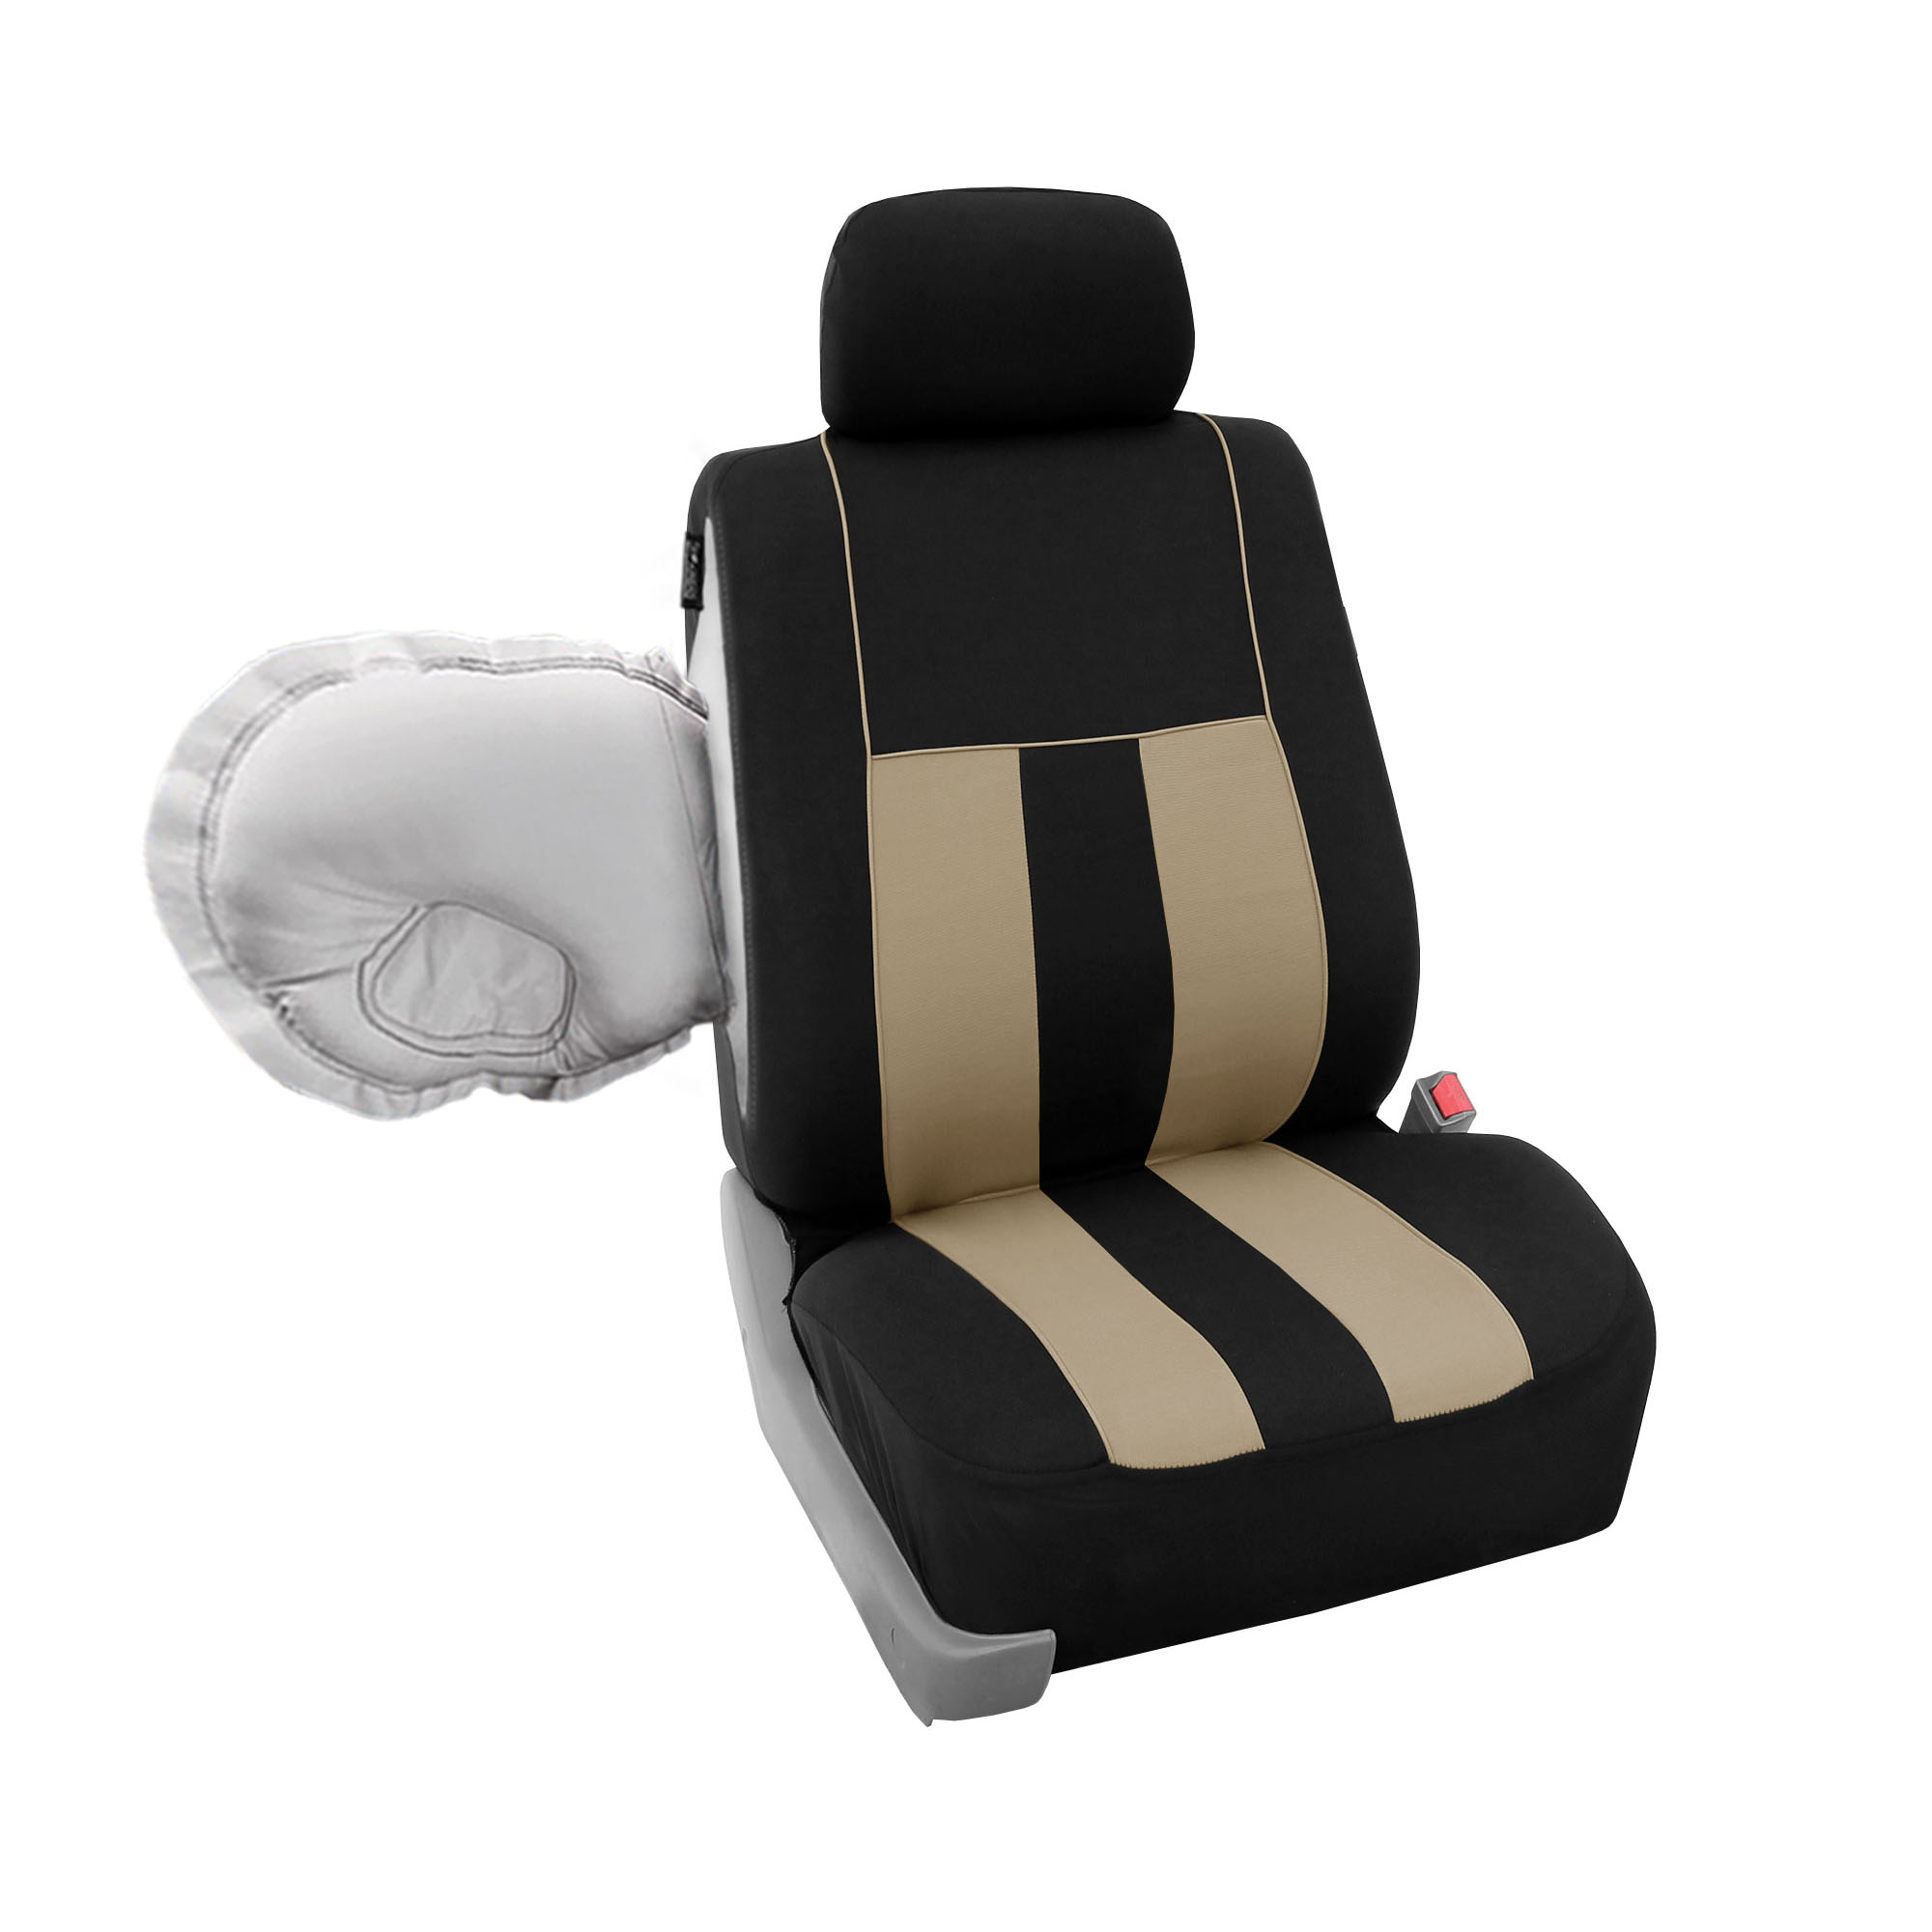 car seat cover set for auto airbag compatible split bench w dash pad ebay. Black Bedroom Furniture Sets. Home Design Ideas